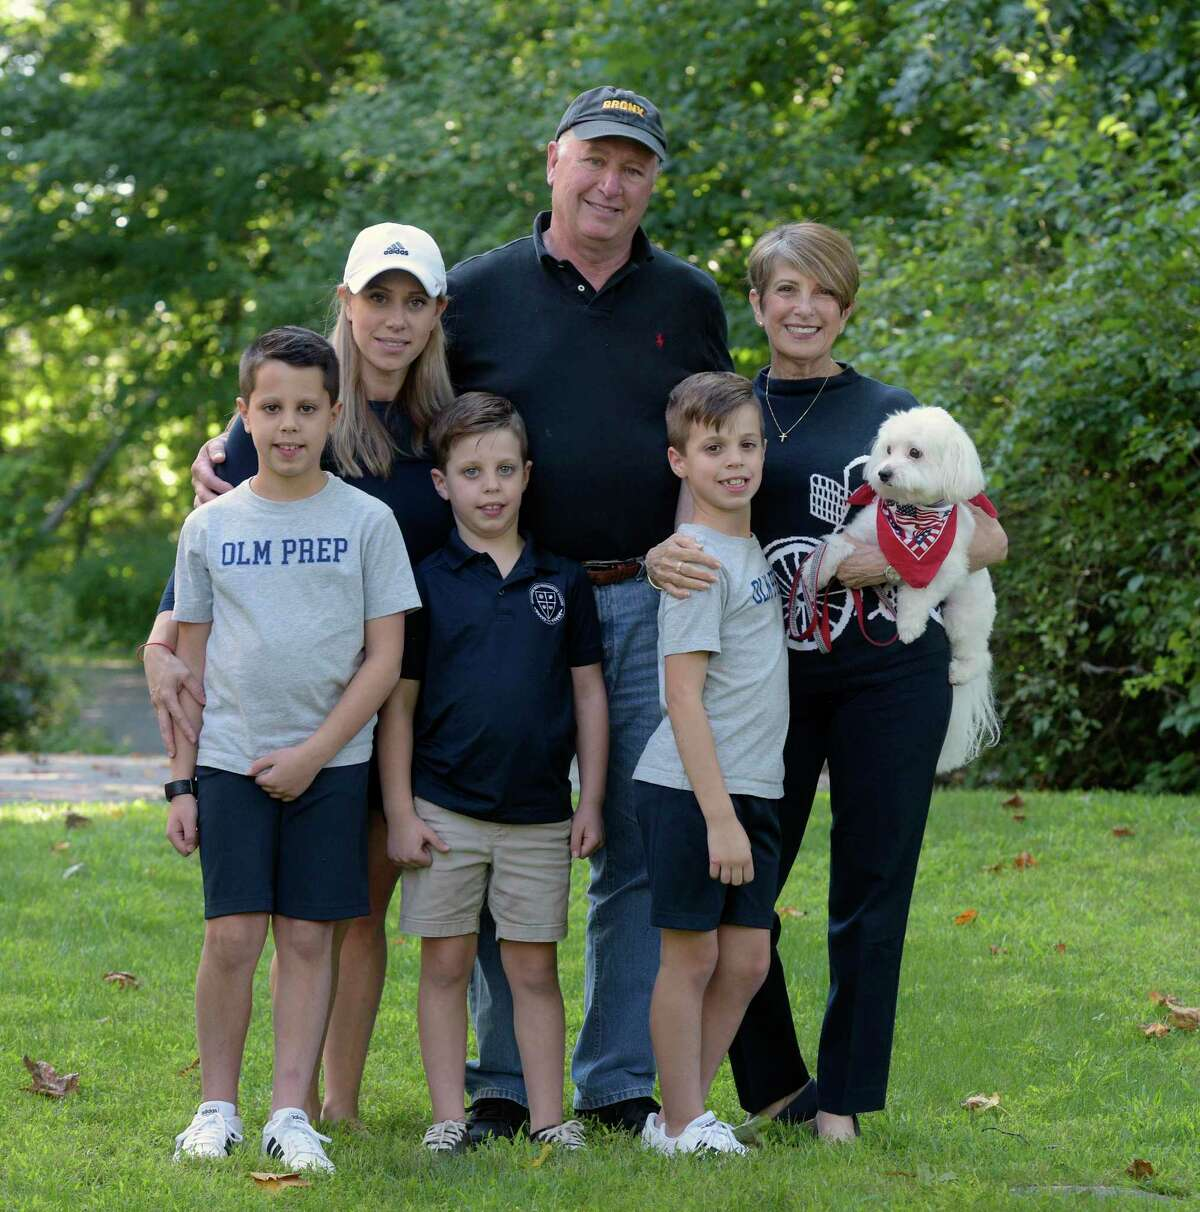 Robert Hofmiller, center, of Guilford, and his family, including wife Rosemary, right, and daughter Jacqueline Ciocca, left, of Madison. Hofmiller lost his sister Judith Hofmiller, of Brookfield, in the twin towers on 9/11. With them are his grandsons Luke Ciocca, left, 10, Peter Ciocca, 6, and Jack Ciocca, right, 8.